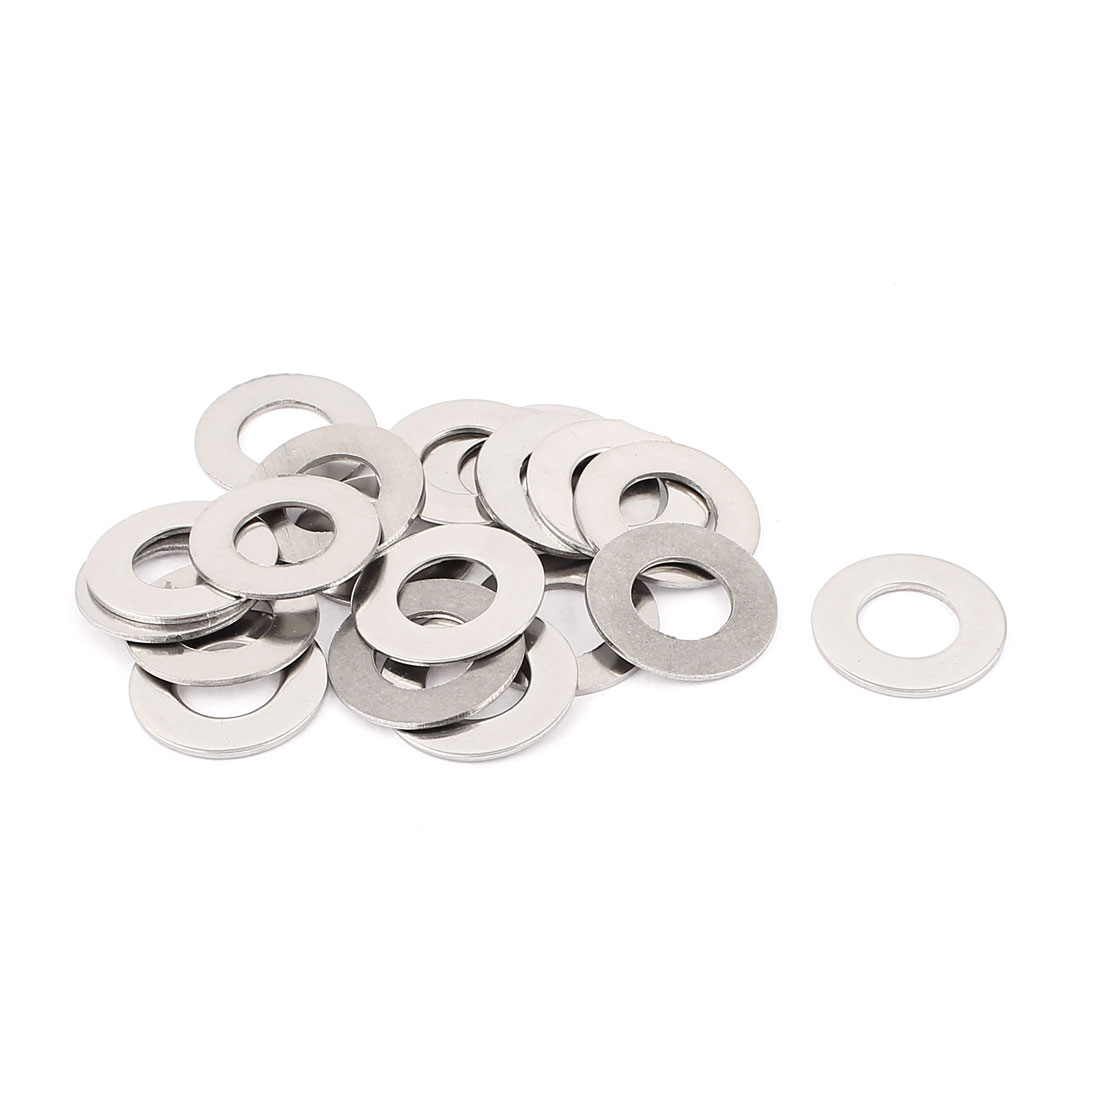 20pcs 304 Stainless Steel M12 Thin Flat Washers Silver Tone